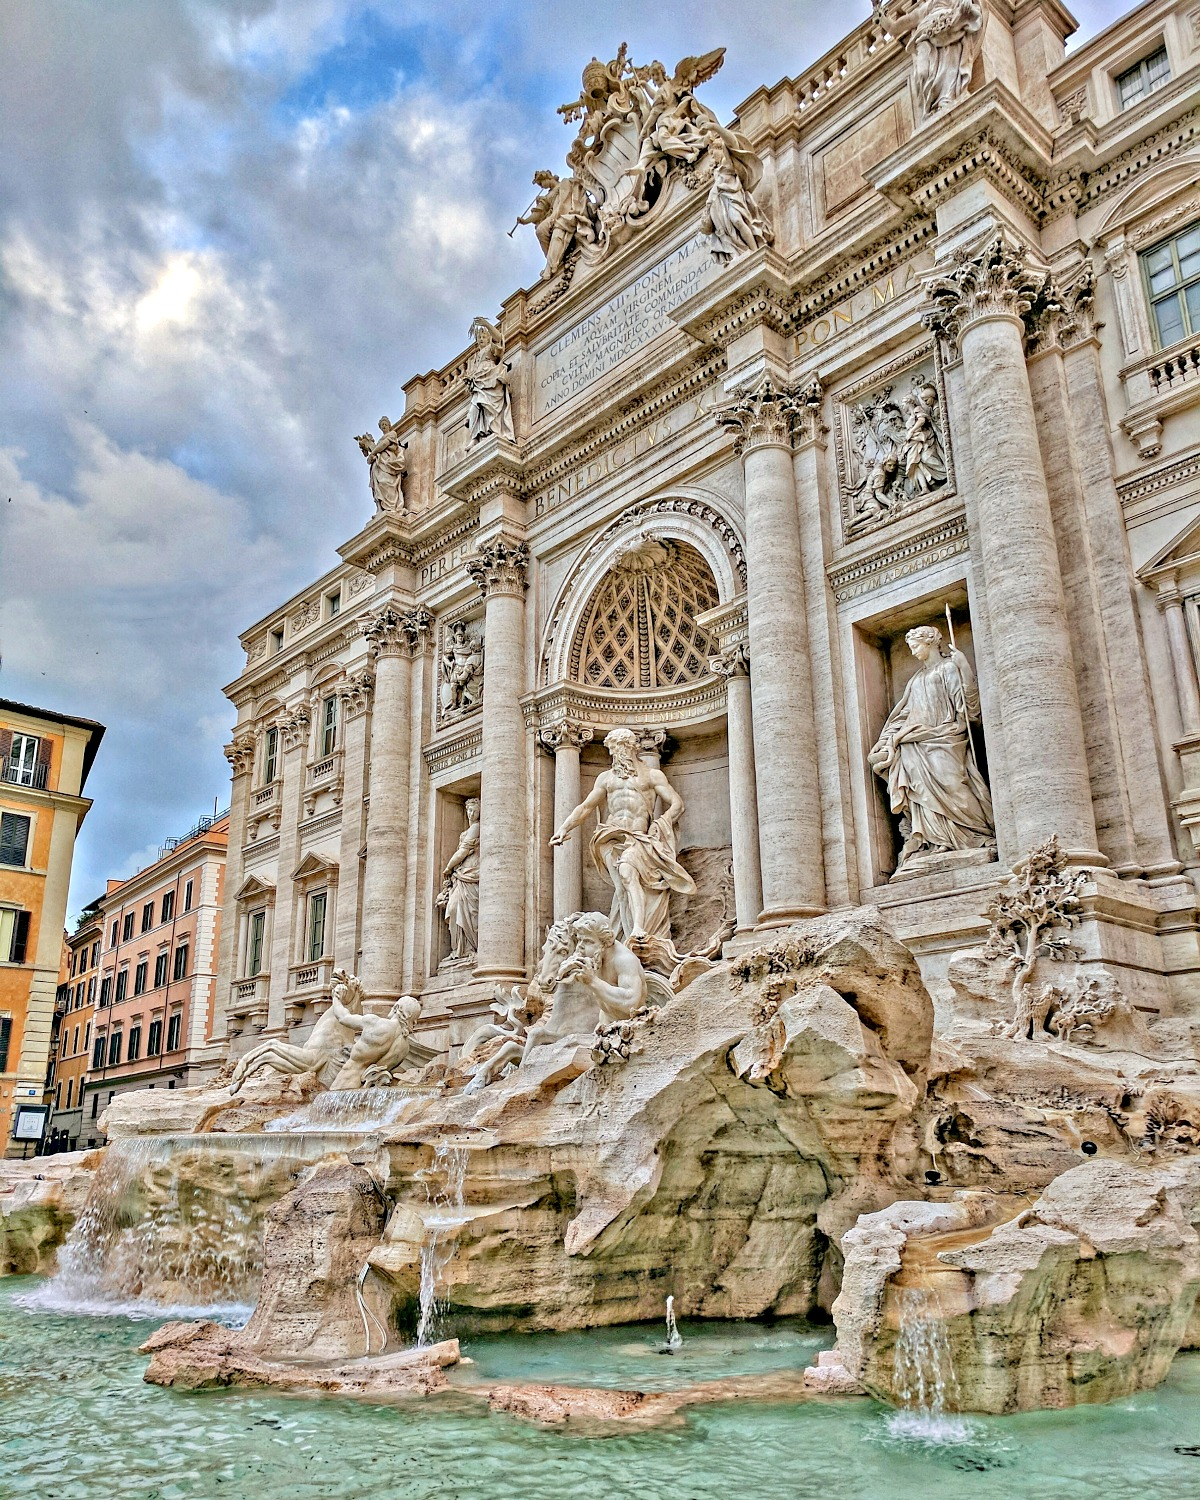 Di Trevi Fountain at 7 AM.